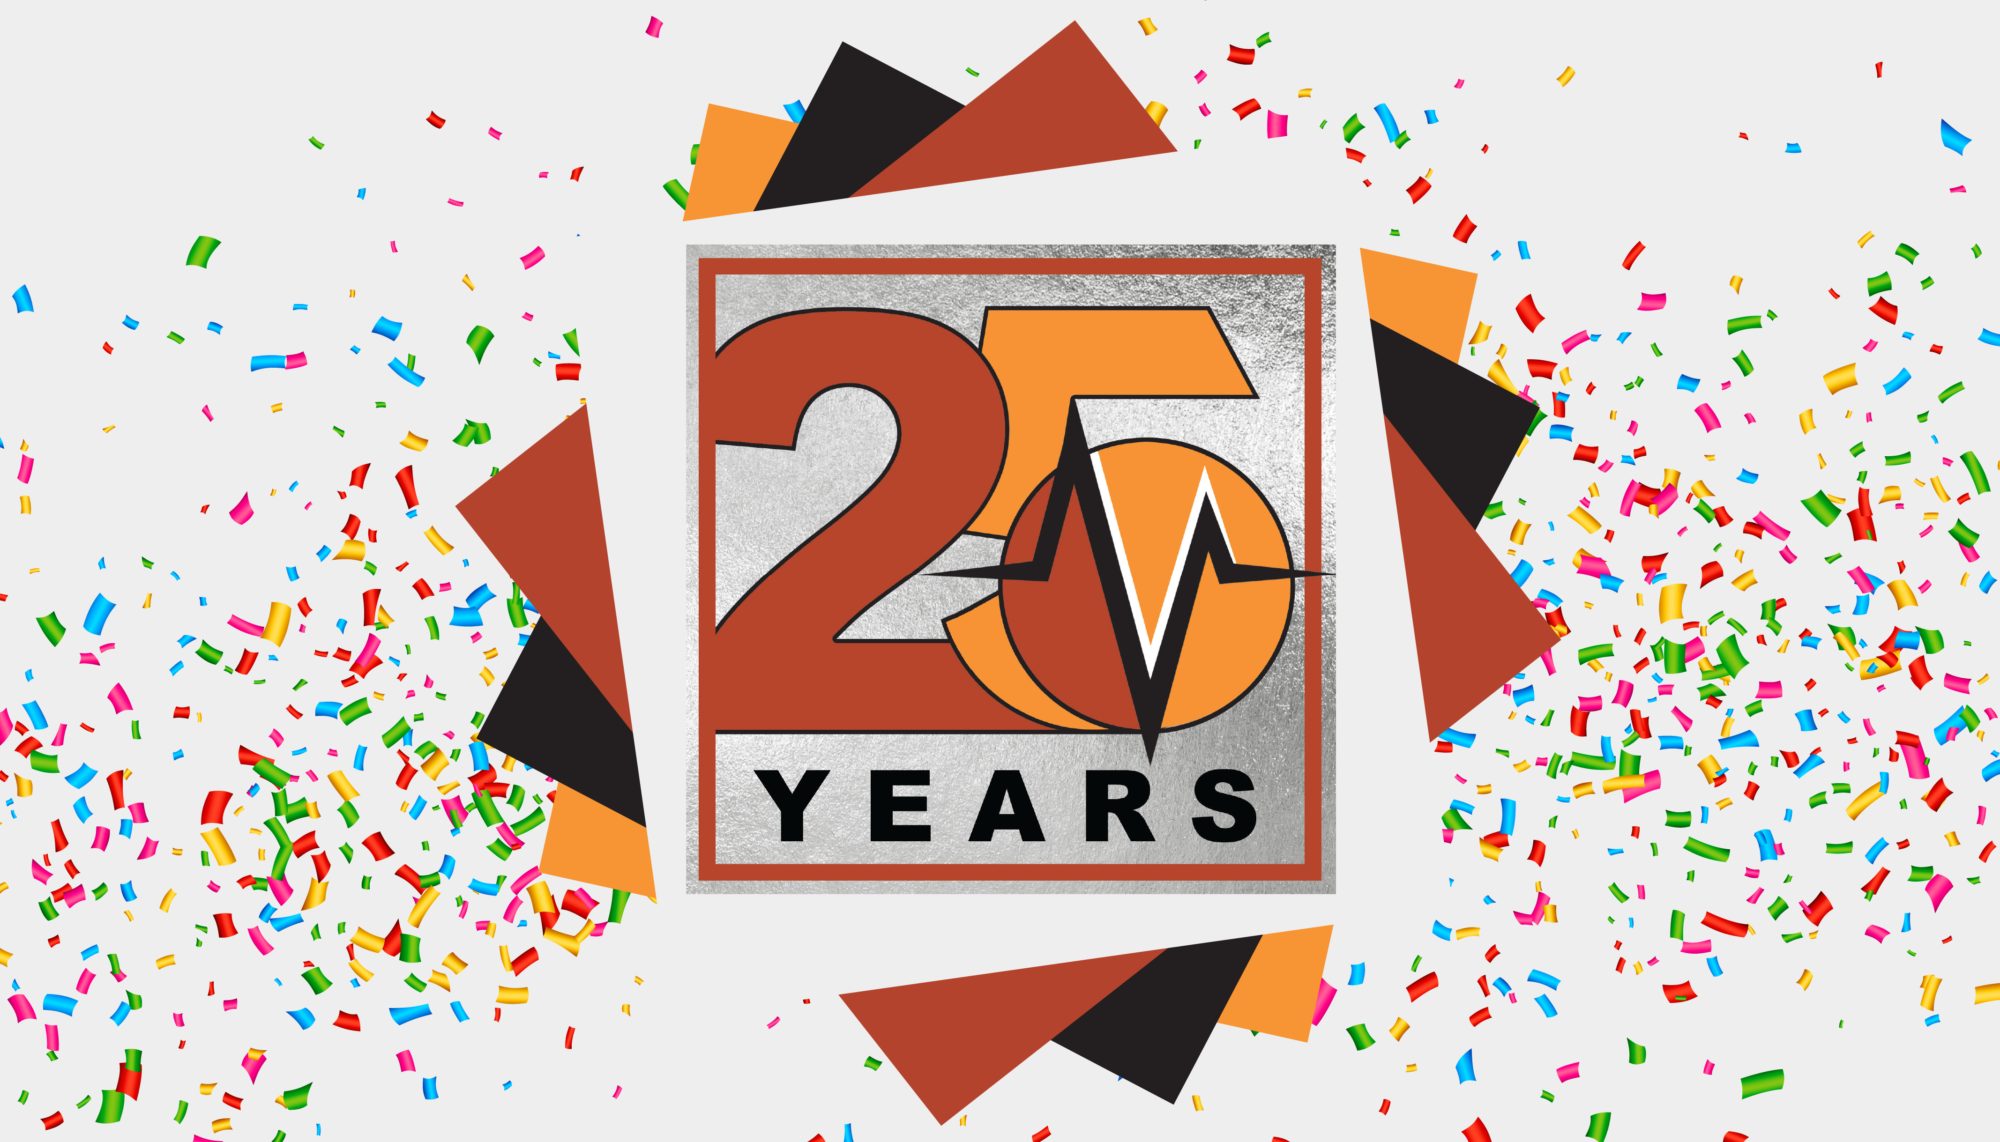 Vanguard 25th anniversary in healthcare marketing confetti banner | Vanguard Communications | Denver, CO